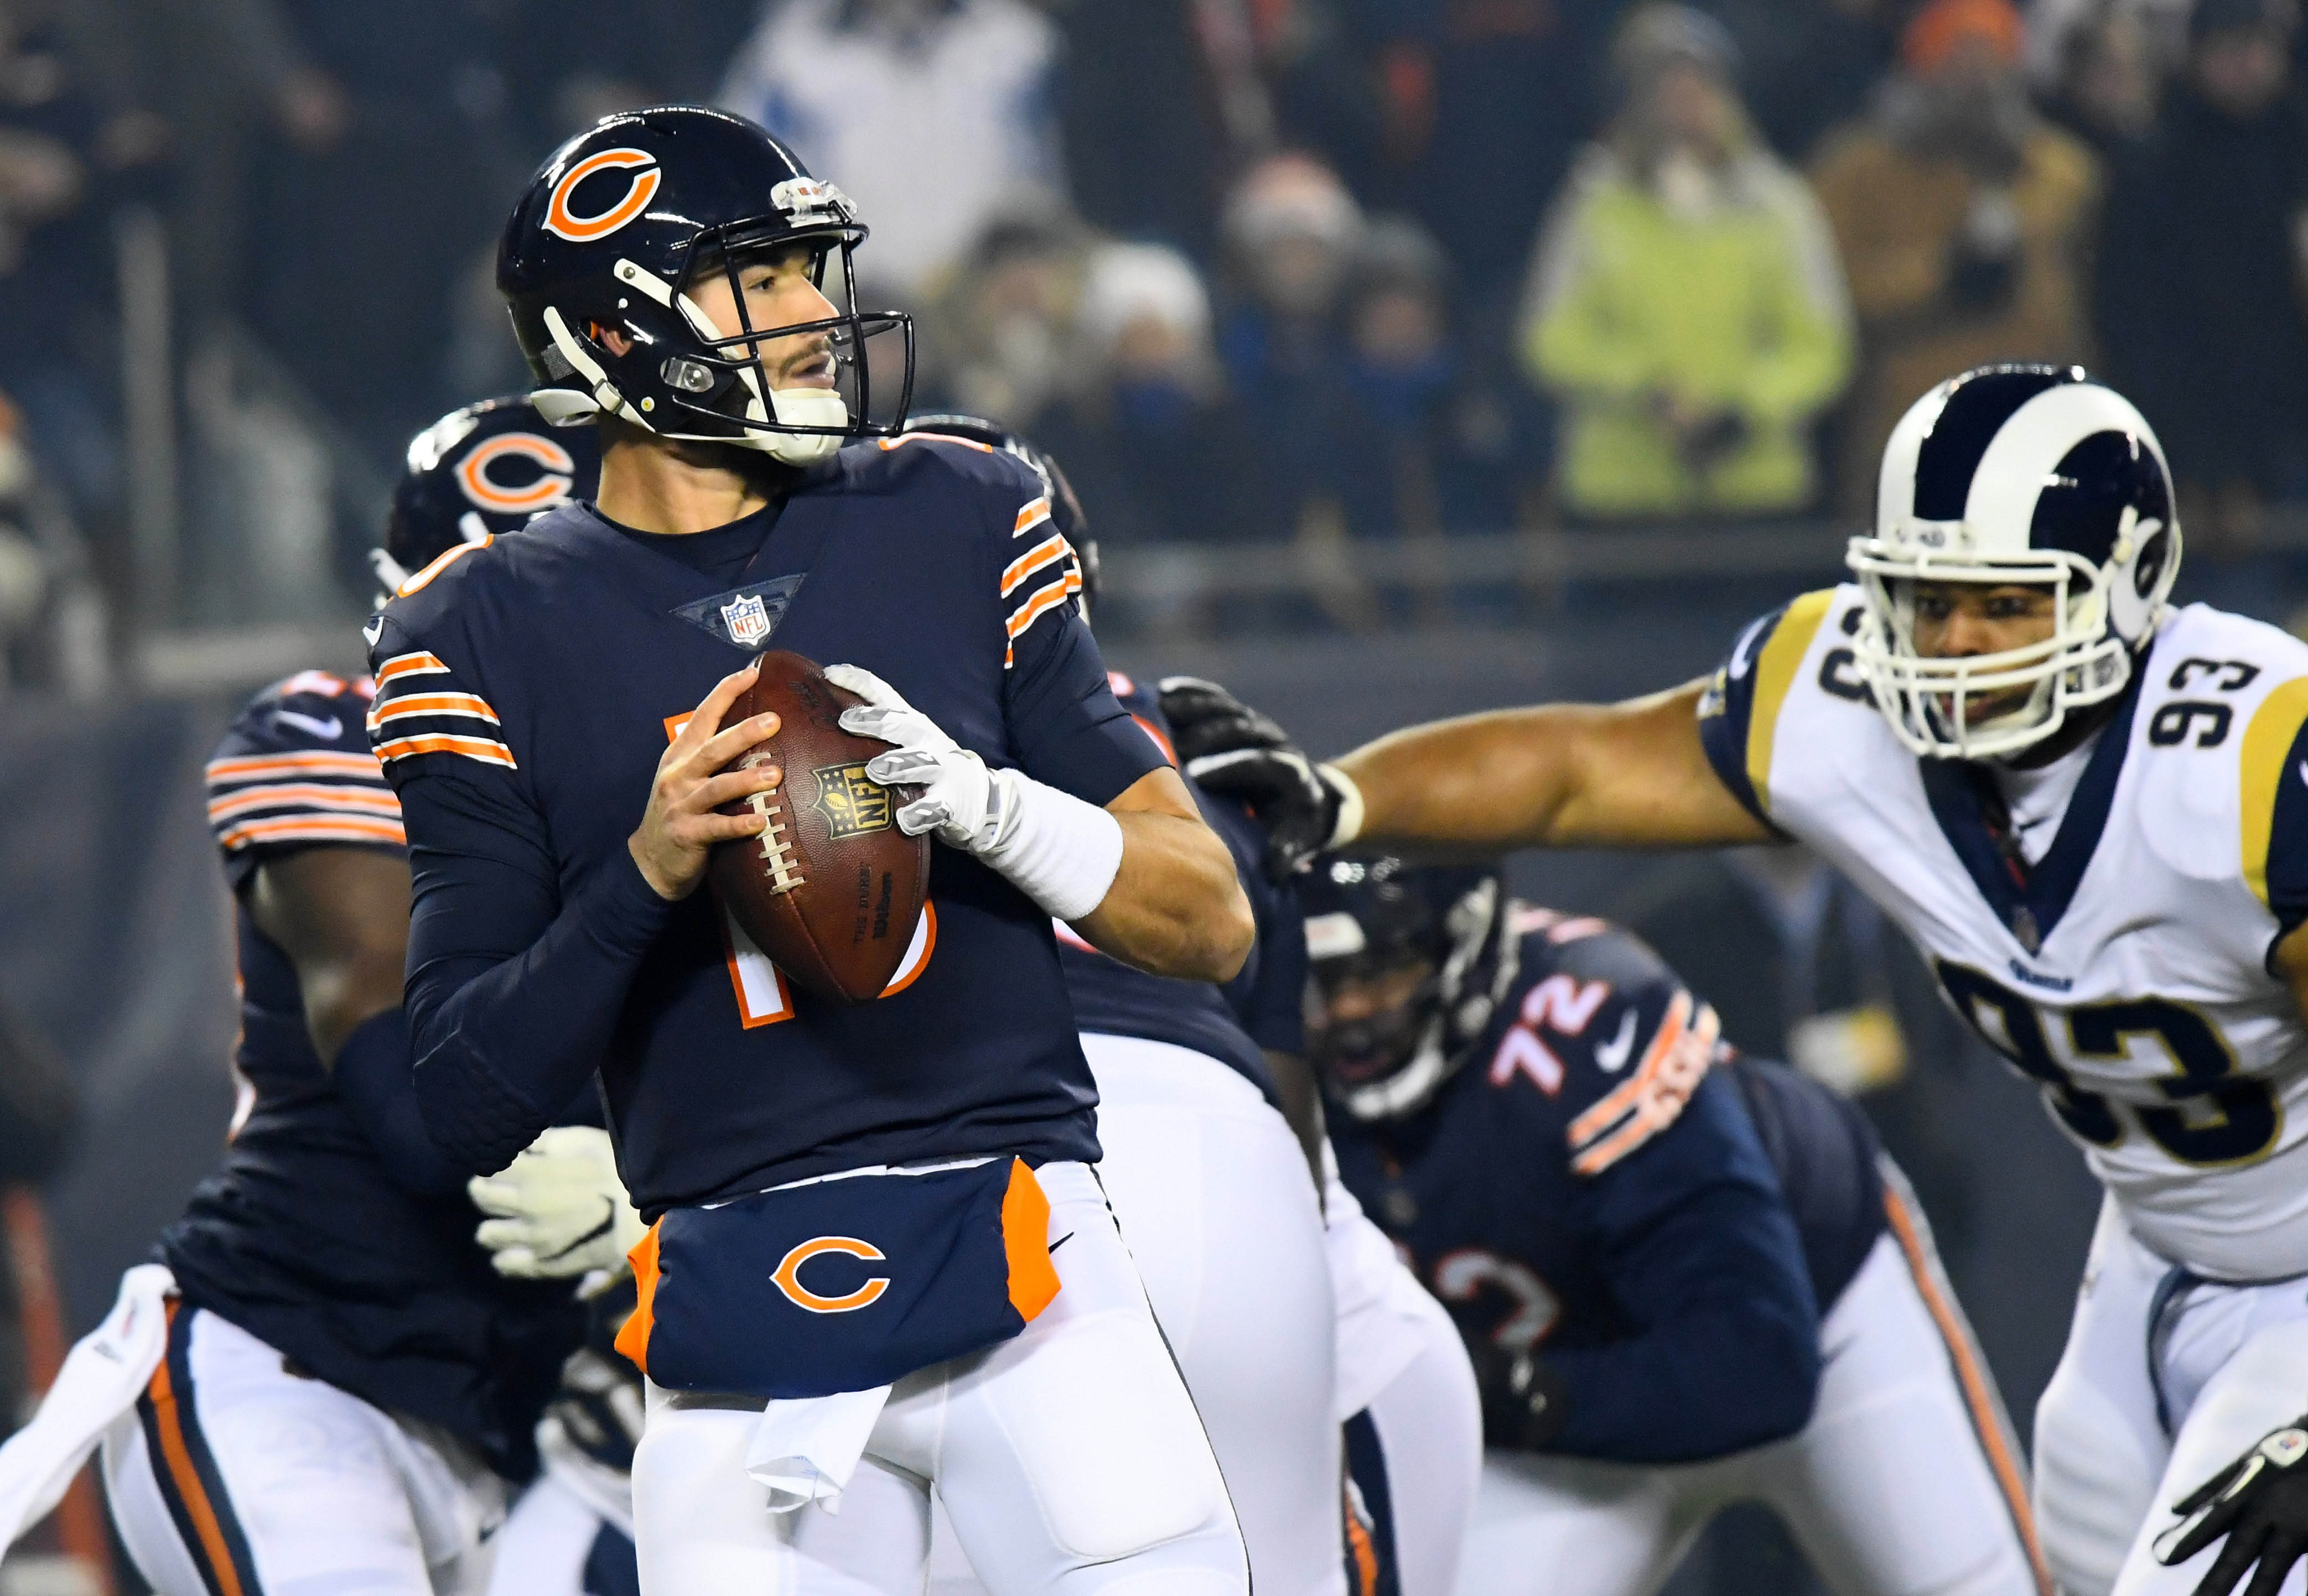 d04637931b73f Game Scout: Green Bay Packers (5-7-1) At Chicago Bears (9-4 ...